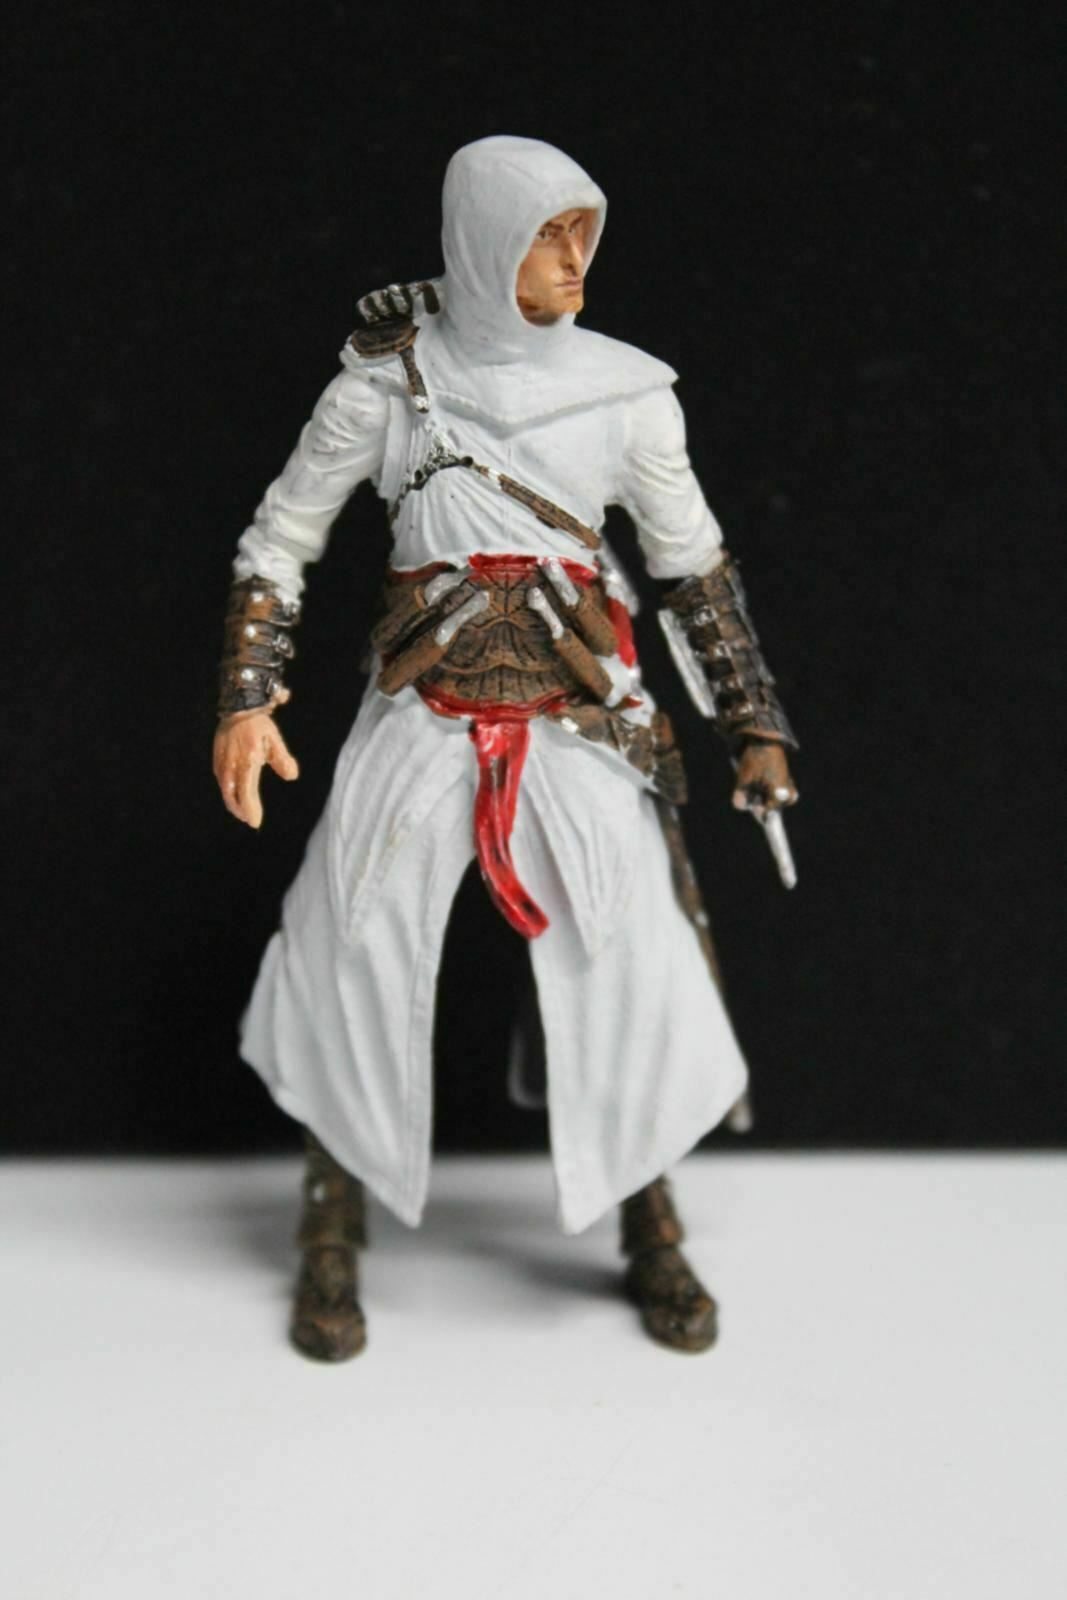 Limited Edition Original Altair Figure From The First Assassins Creed Game BNIB